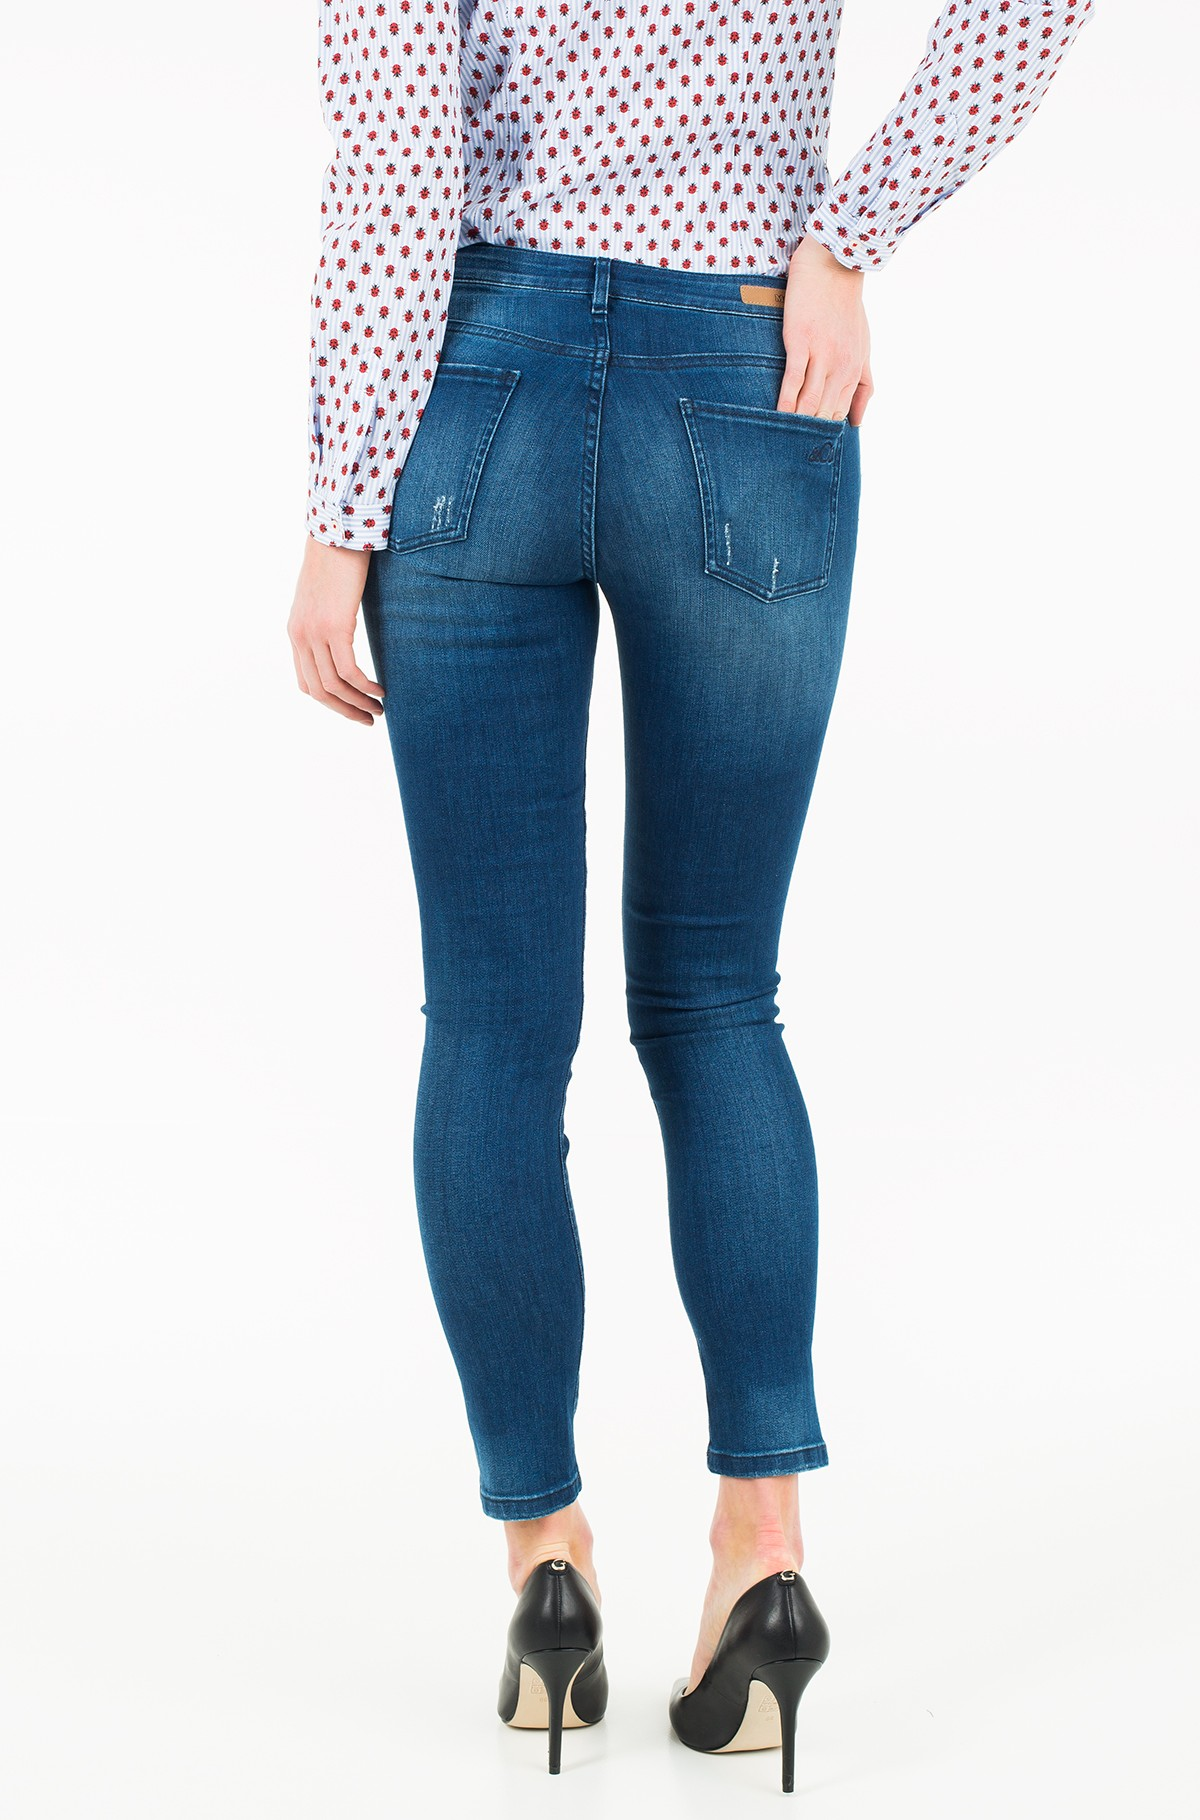 Jeans Mosca-full-3